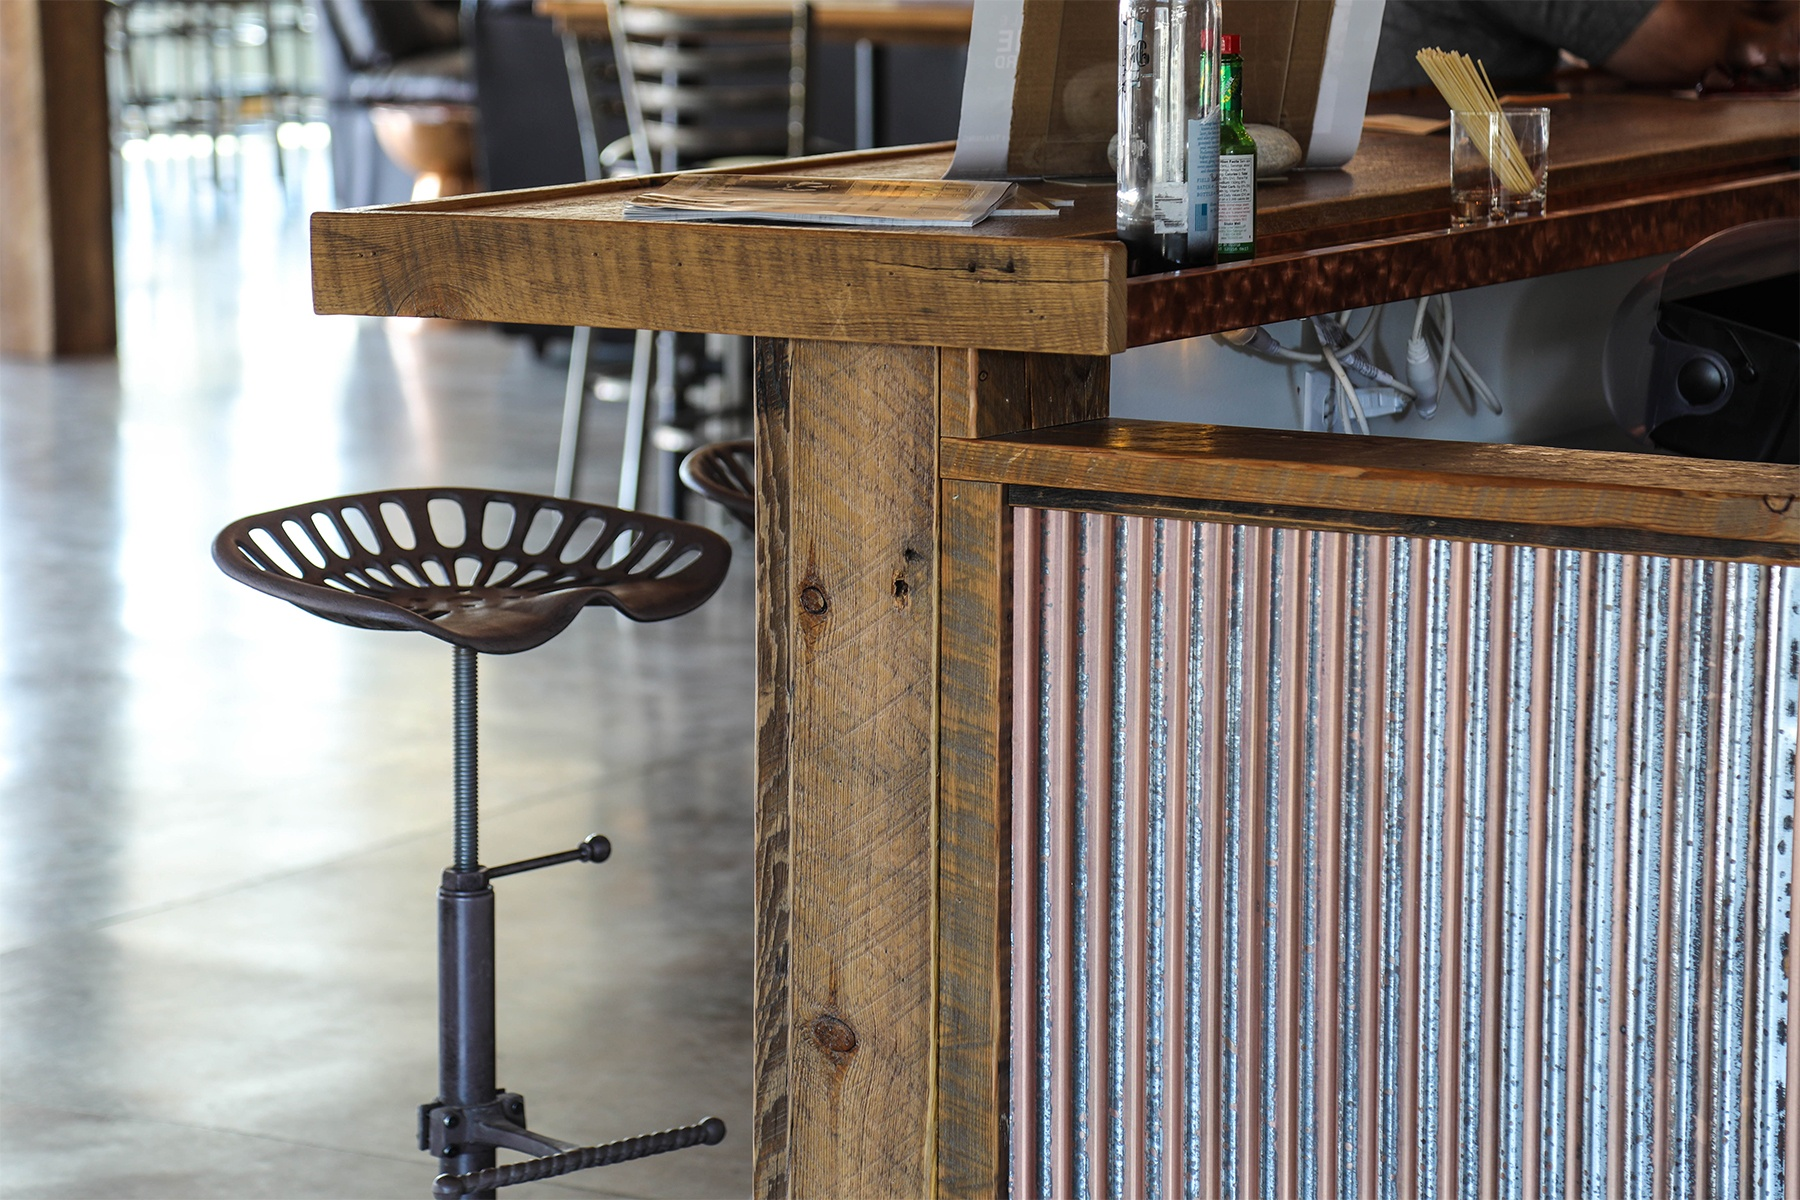 Corrugated Wainscot accent on bar